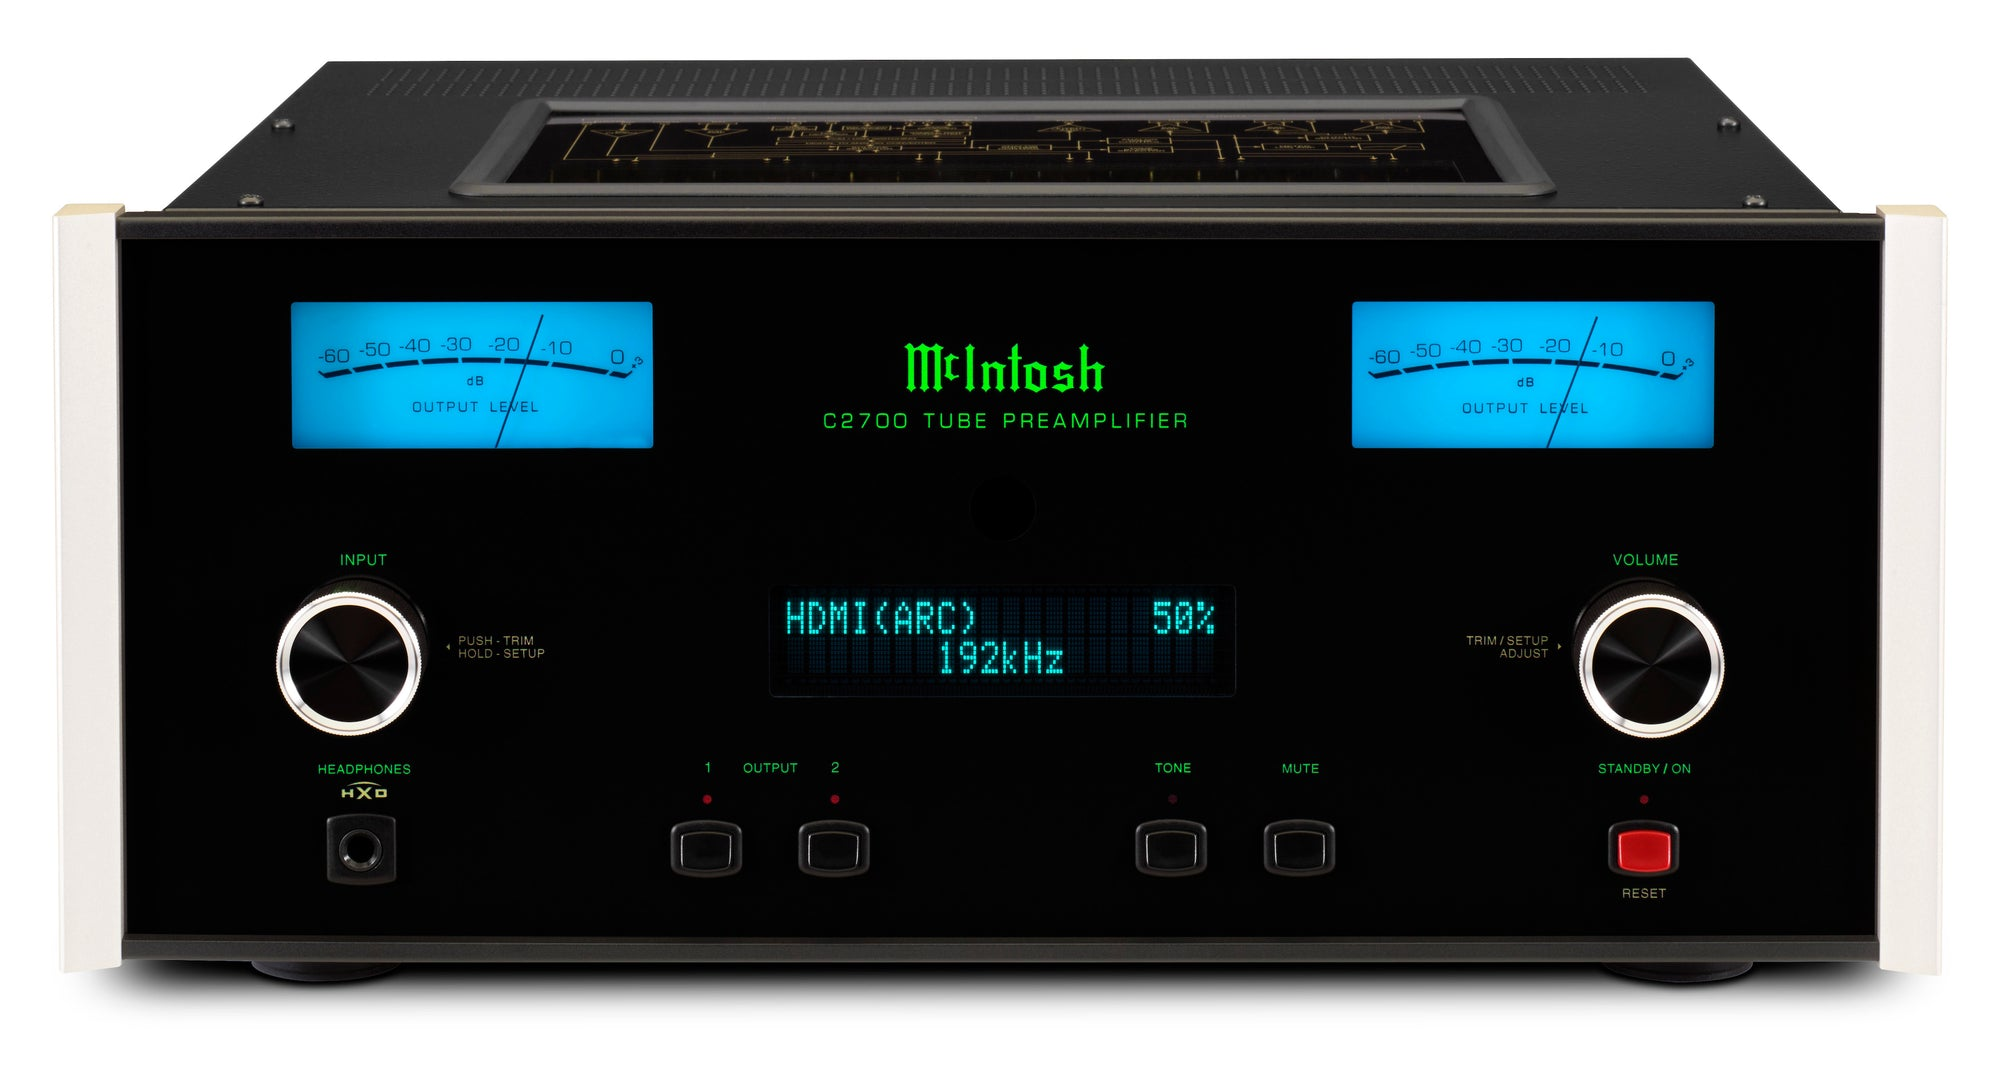 McIntosh C2700 Tube Preamplifier Arrives